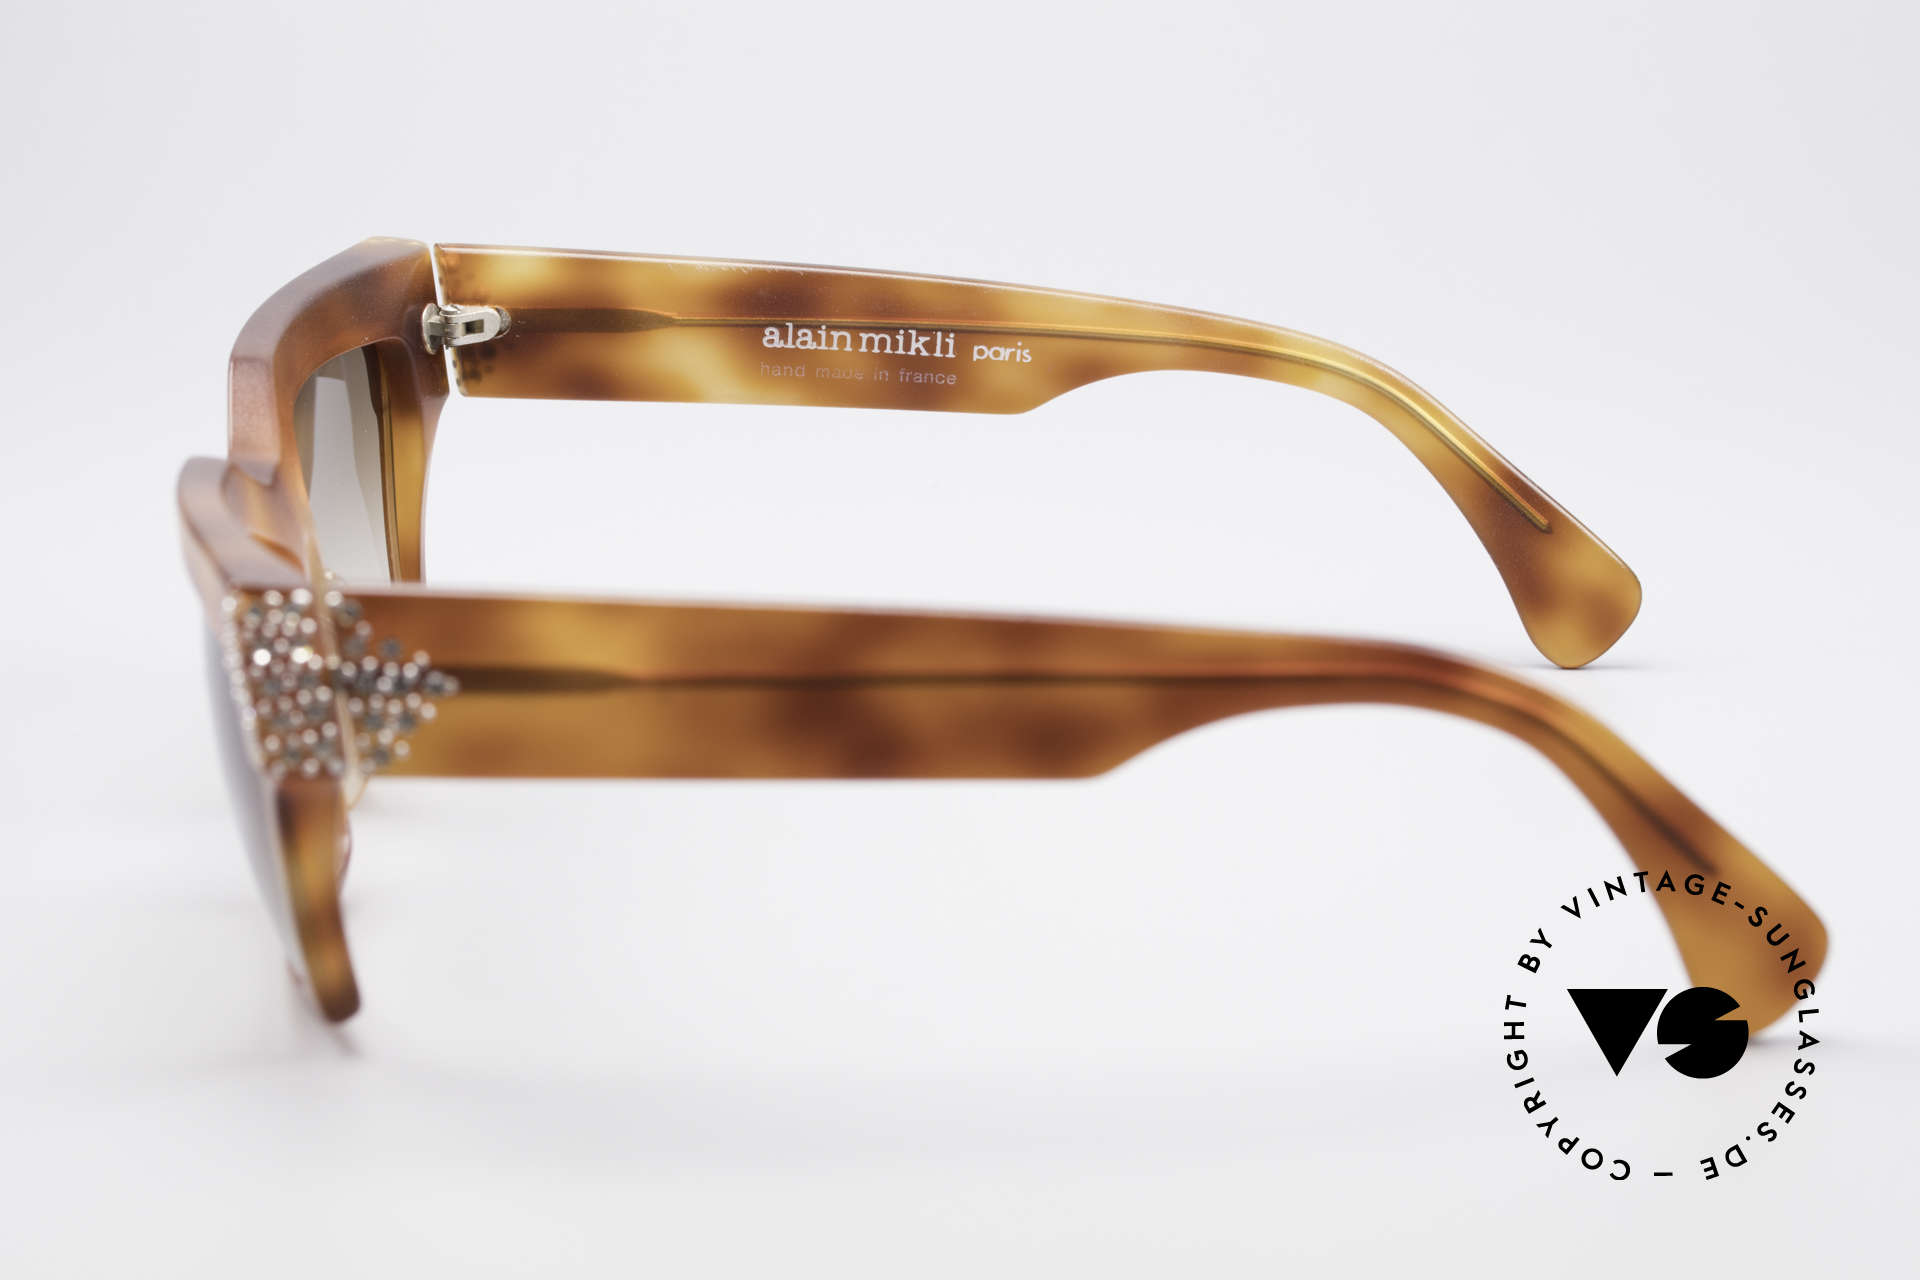 Alain Mikli 318 / 053 80's Gem Designer Sunglasses, unworn; one of a kind (like all our rare vintage shades), Made for Women